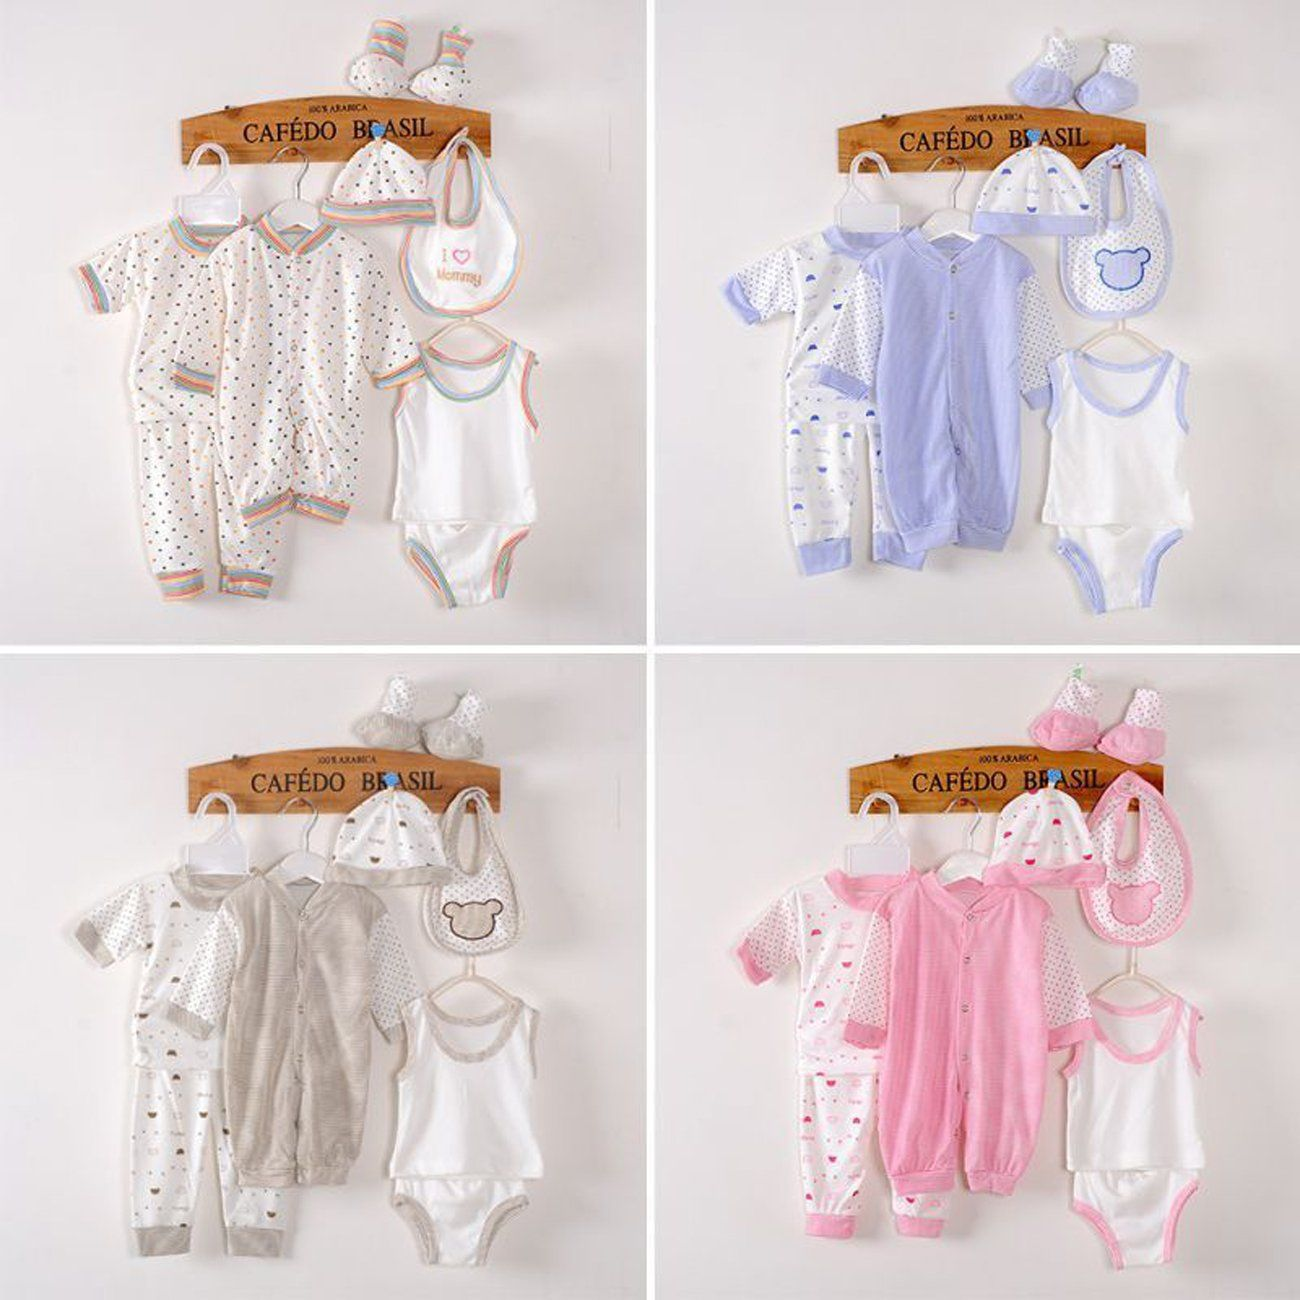 6197fdef2339 8PCS Cotton Newborn Baby Clothes Clothing Set Includes Jumpsuit Hats Socks  Bib Tops Pants Multi Color Dots Style Layette for 03M Infant White    Be  sure to ...